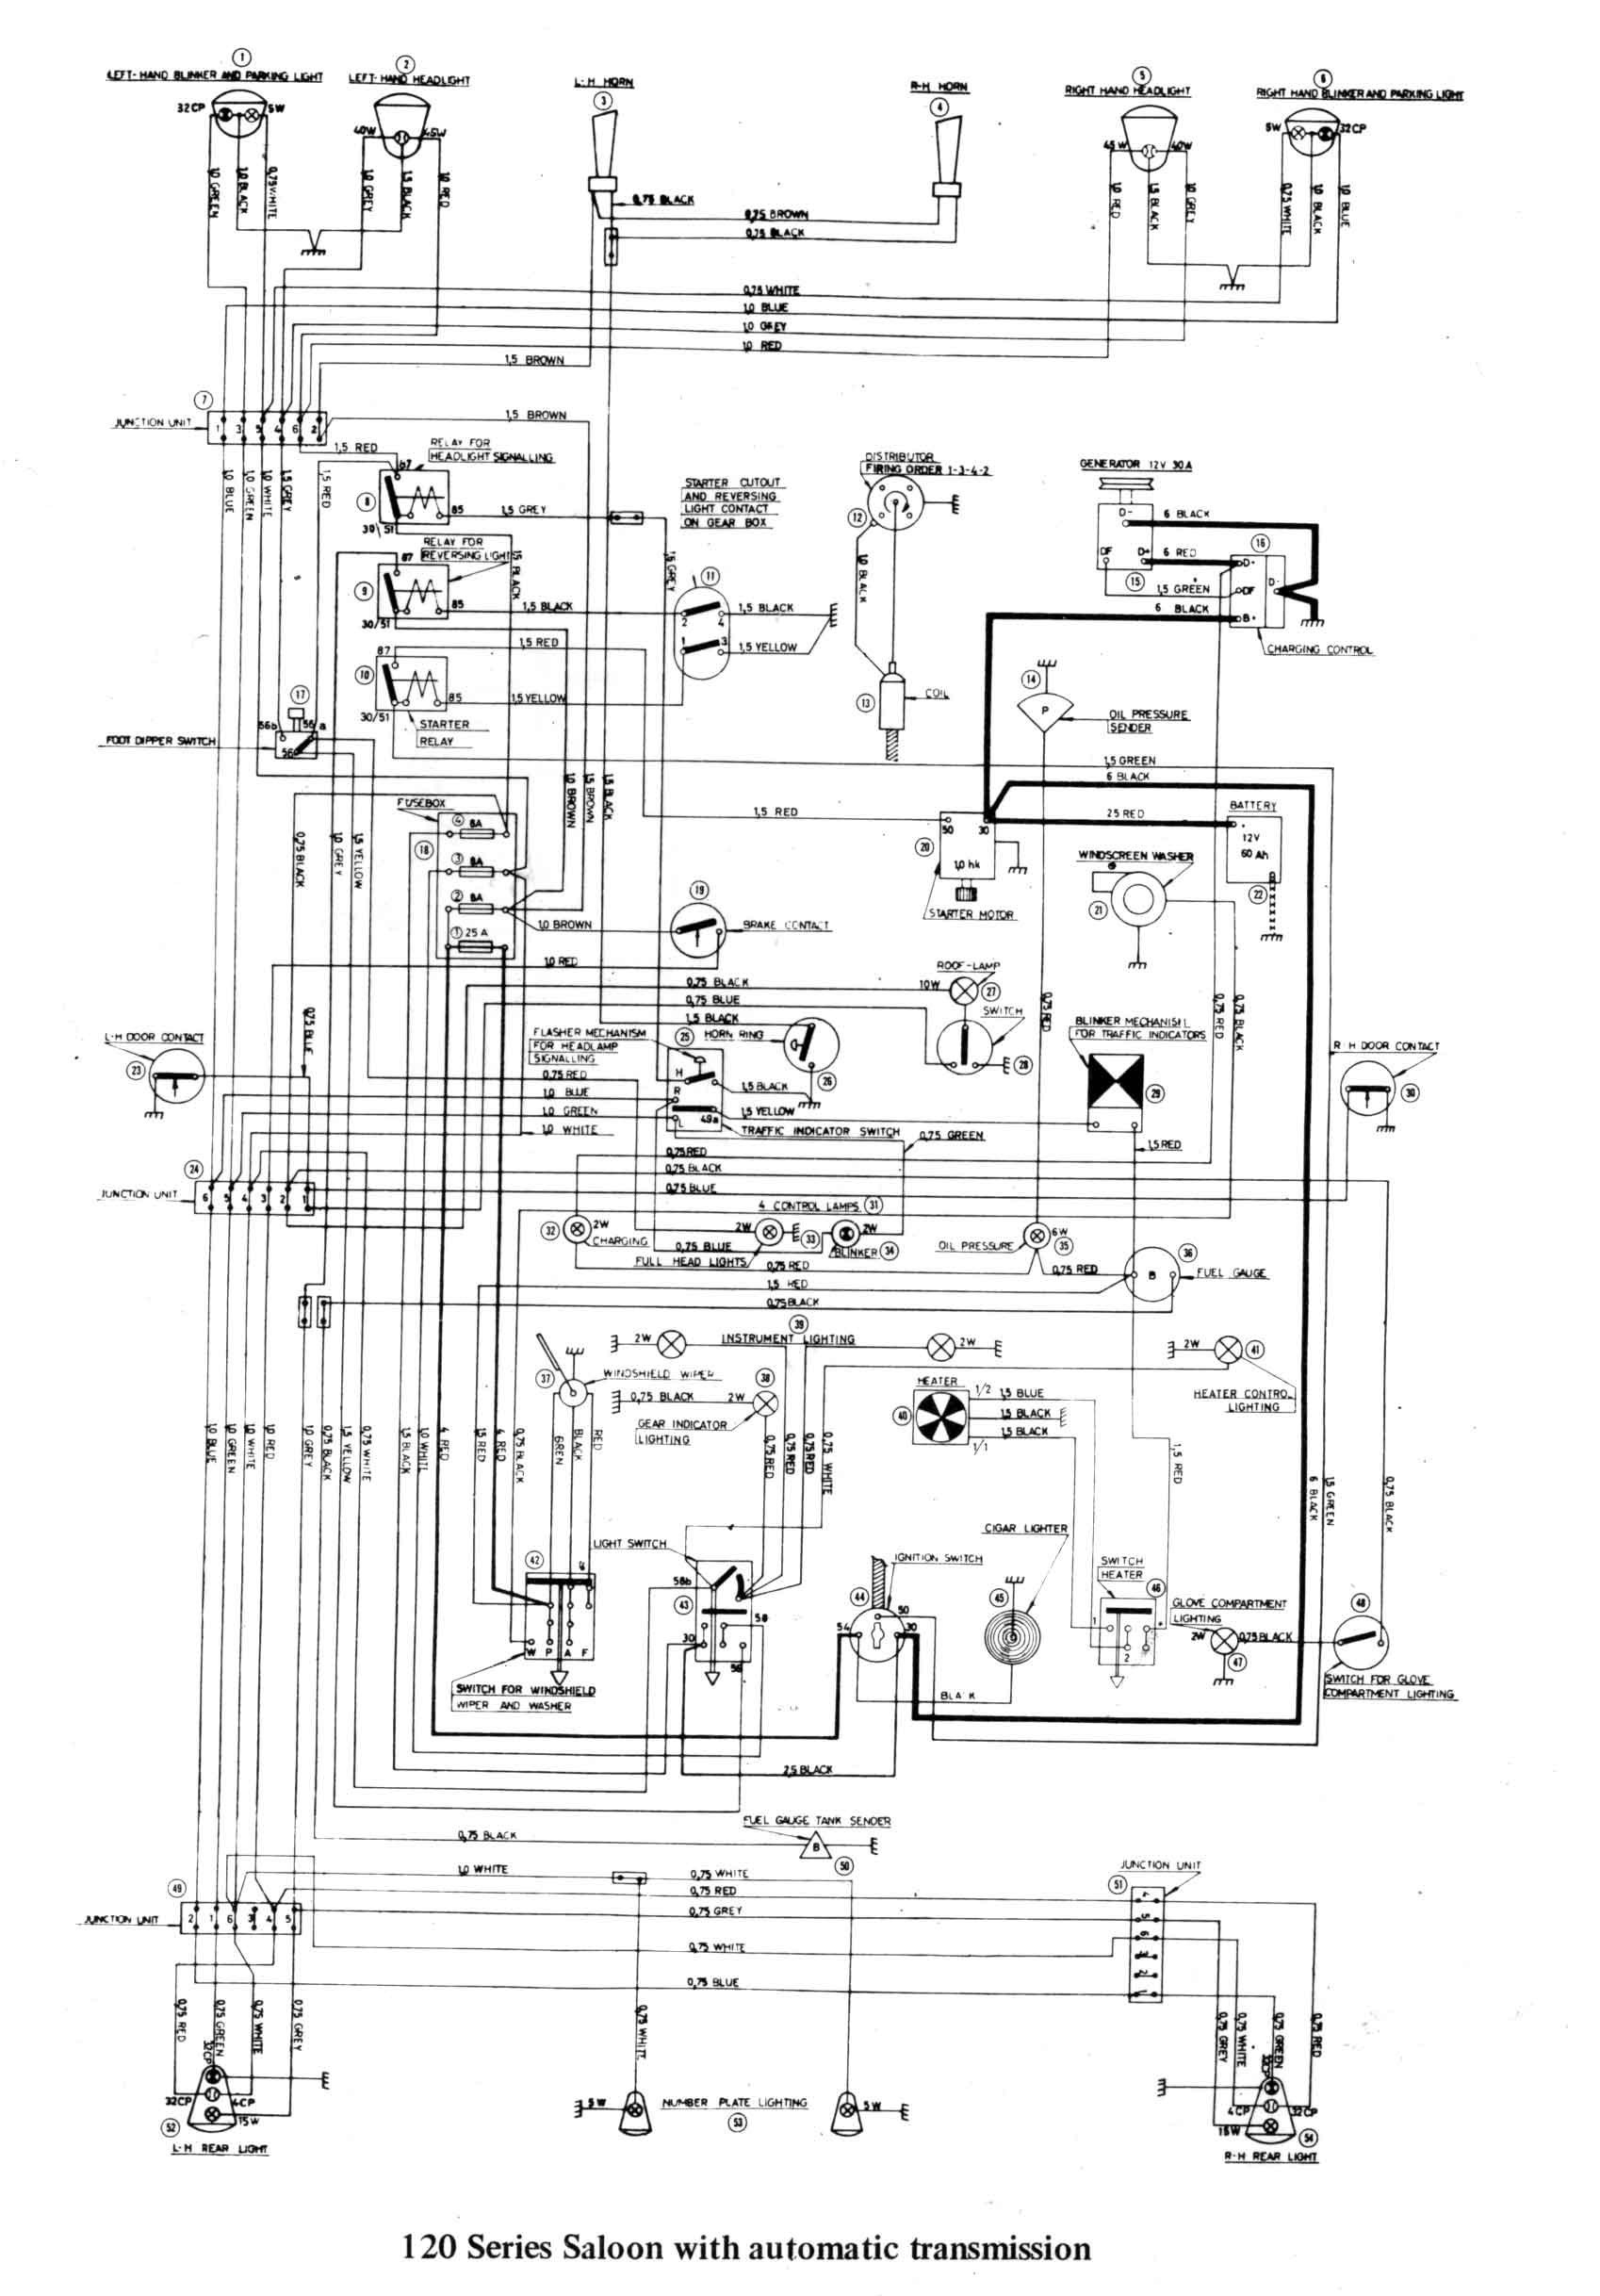 Brake Light Wire Diagram Wiring Diagrams for Turn Signal Best Stop Turn Tail Light Wiring Of Brake Light Wire Diagram